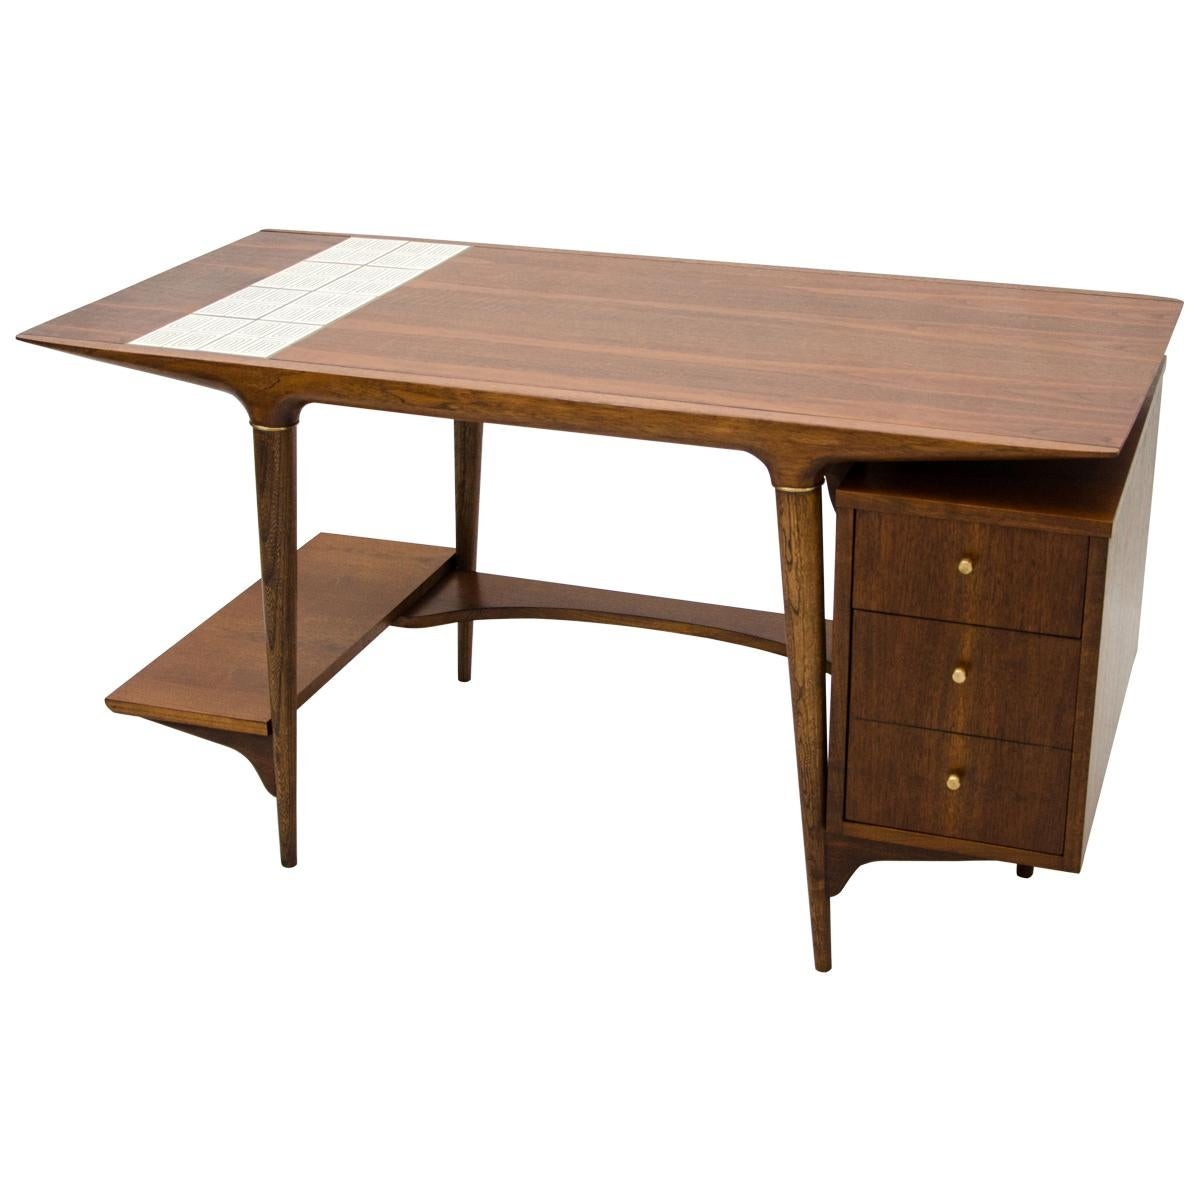 Unusual Desk Unusual Mid Century Desk By Lane With Floating Drawer Cabinet Tile Insert